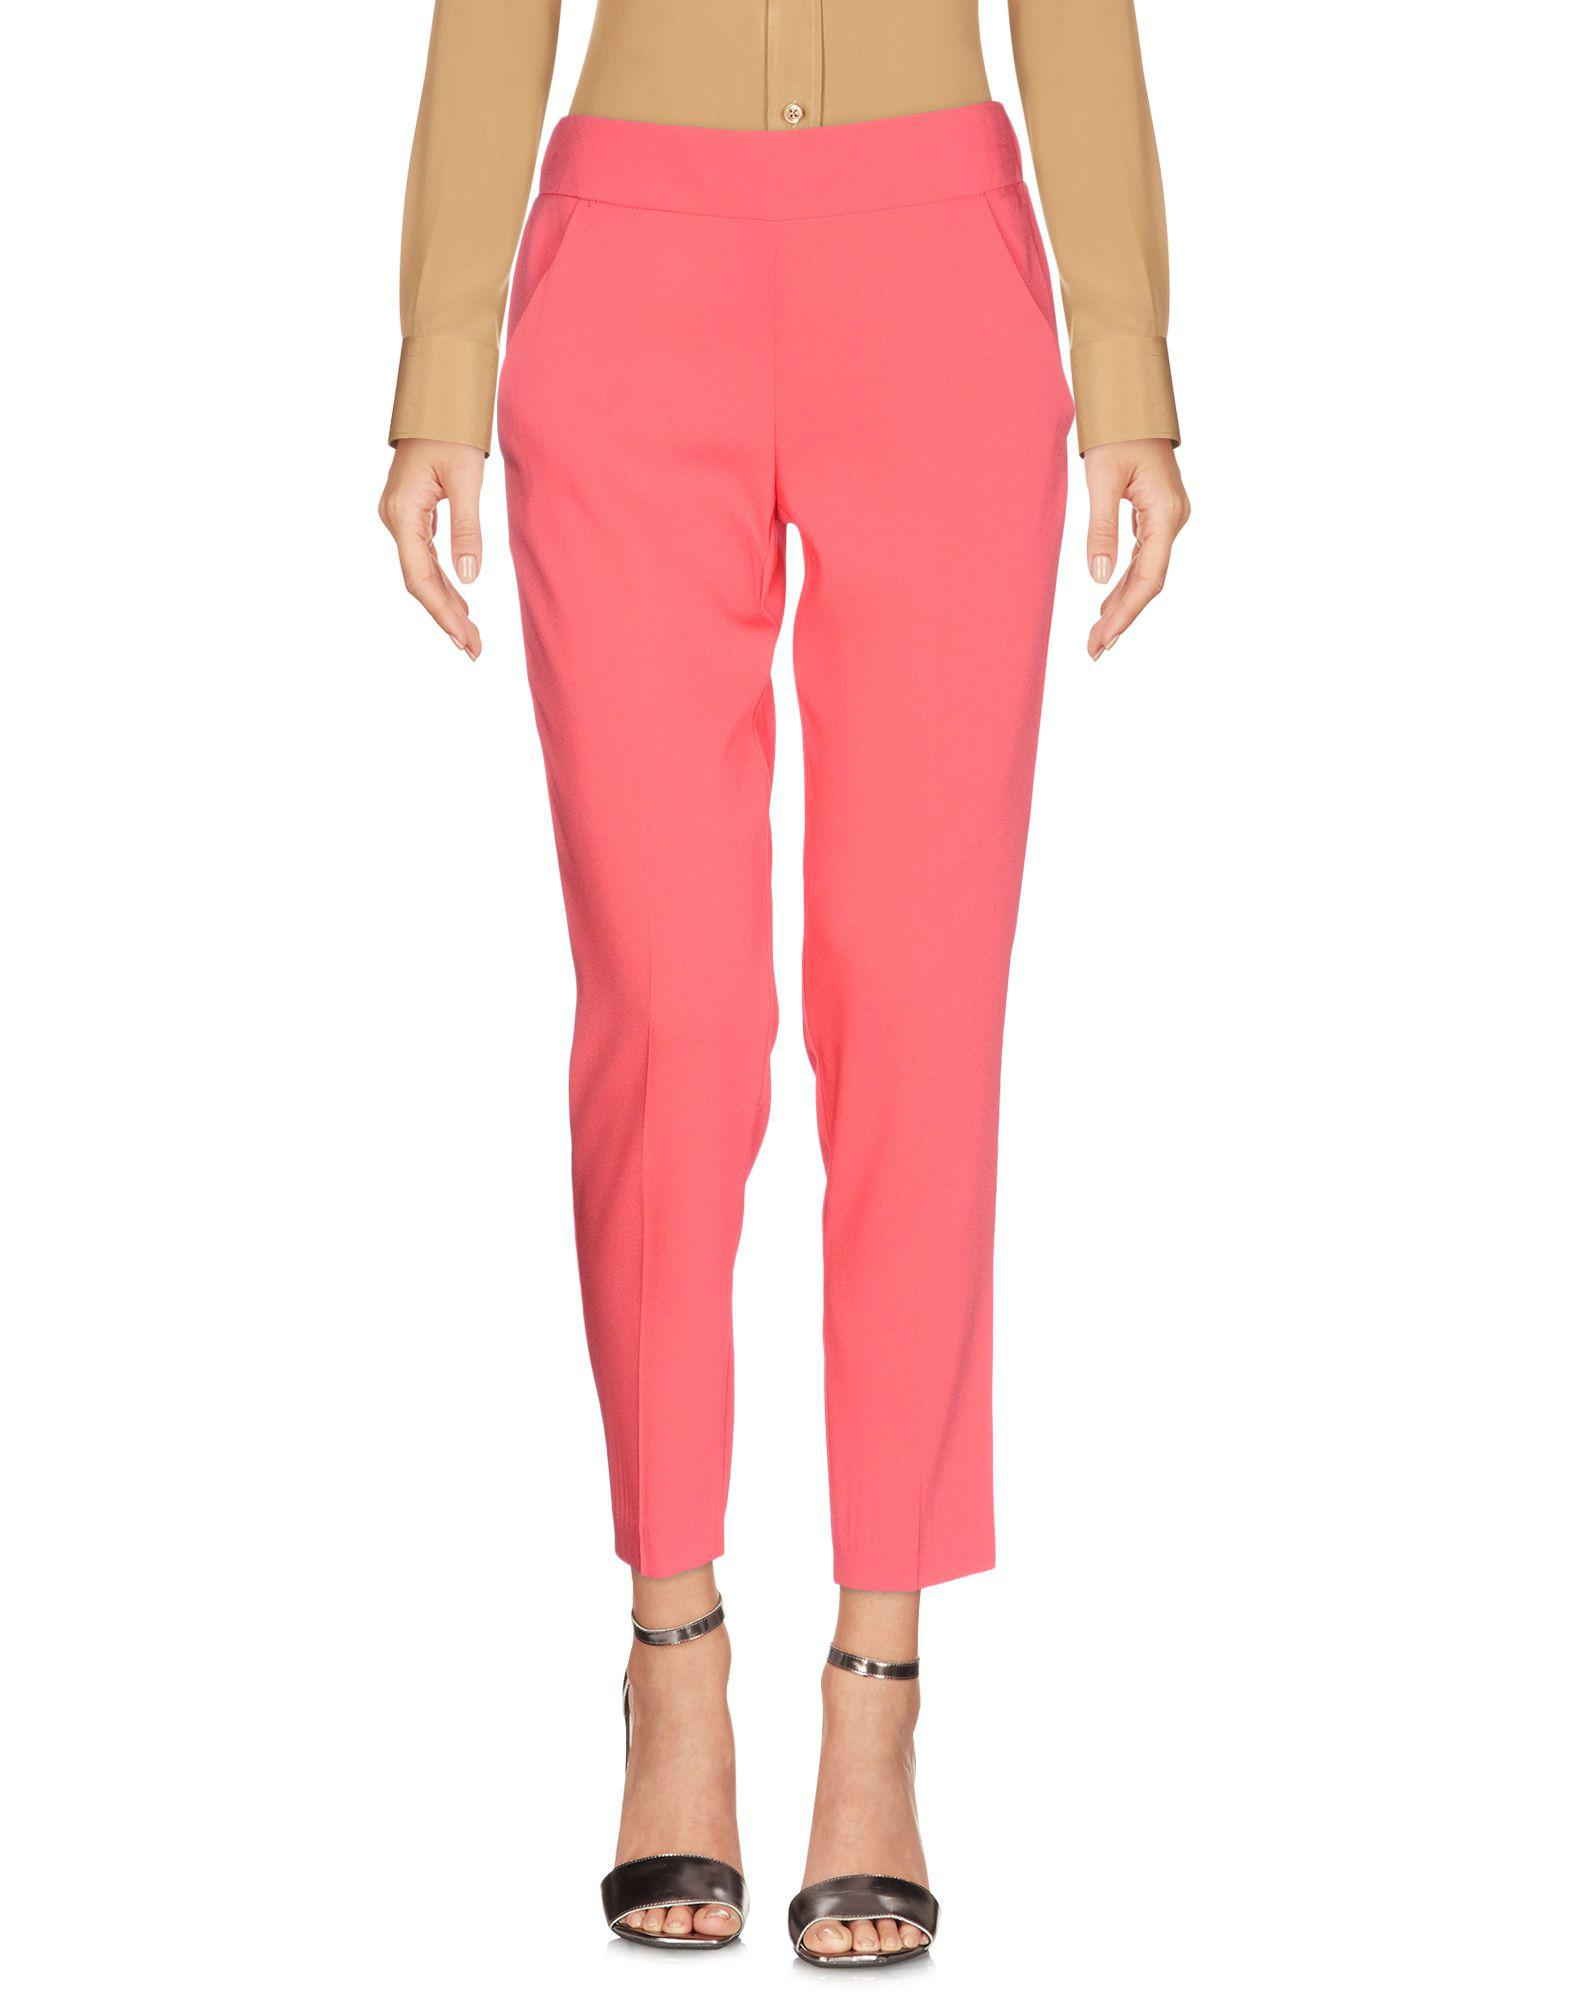 TROUSERS - Casual trousers Carla G. Free Shipping From China q8ixcYneE